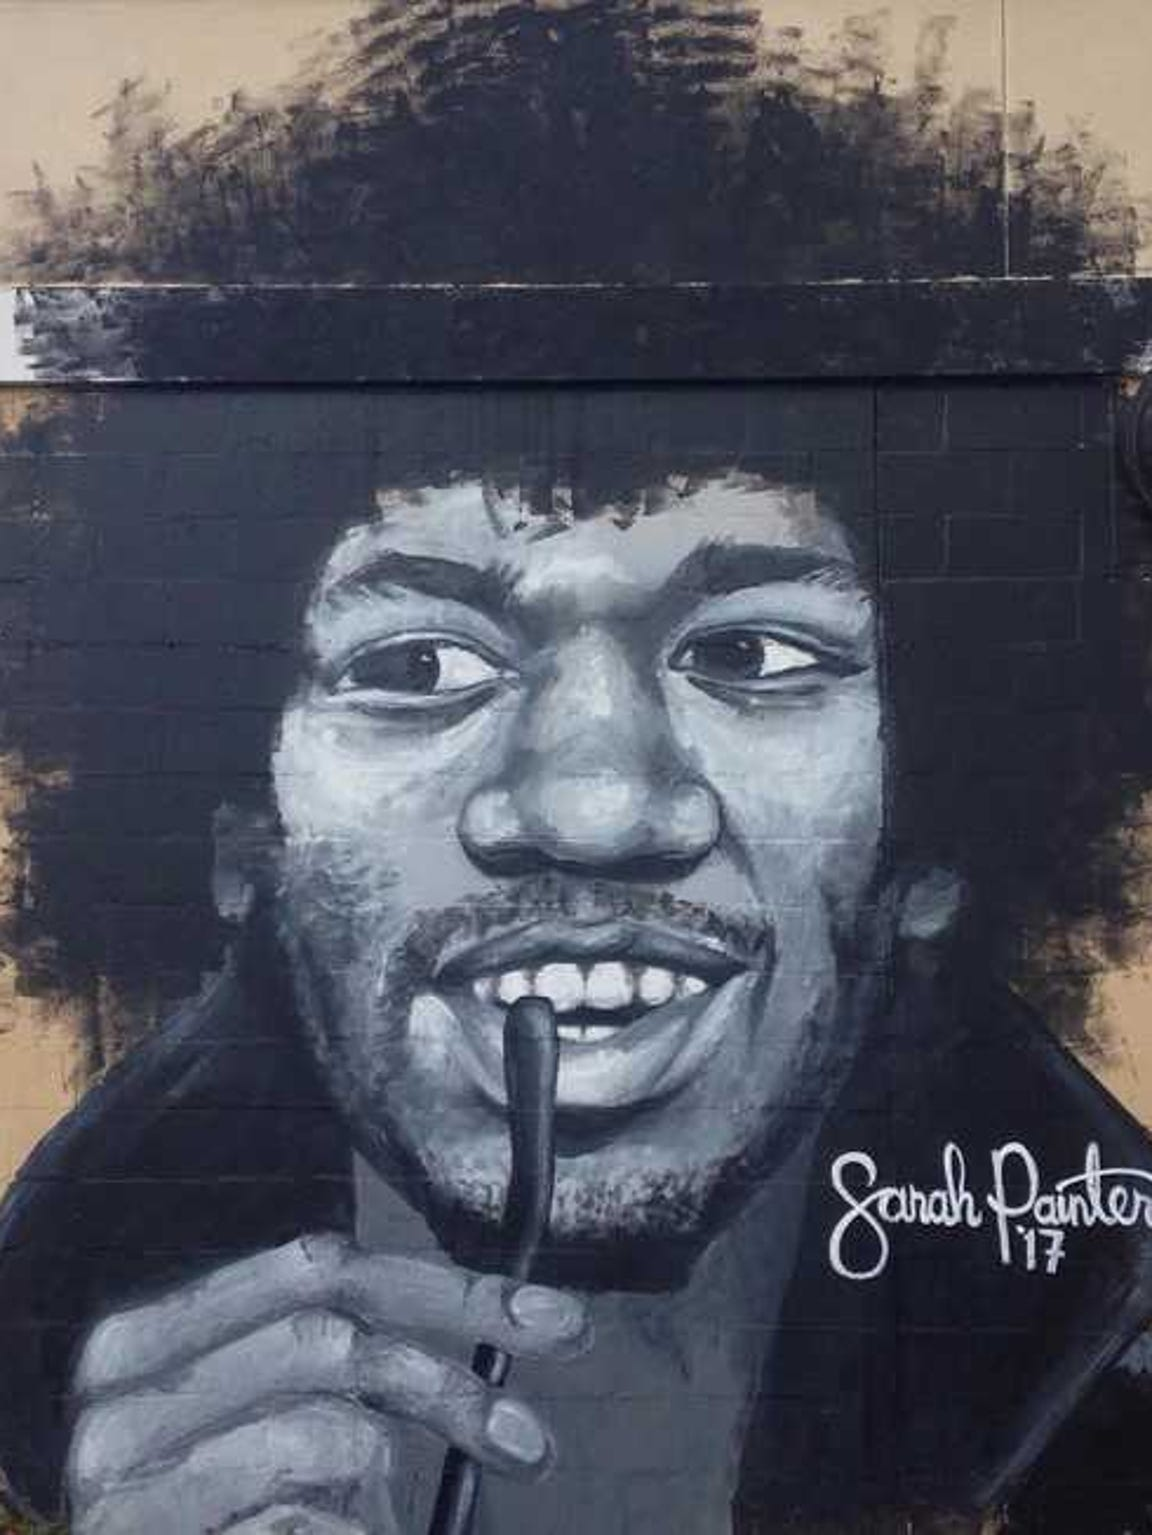 An inquisitive Jimi Hendrix with wandering eyes looking